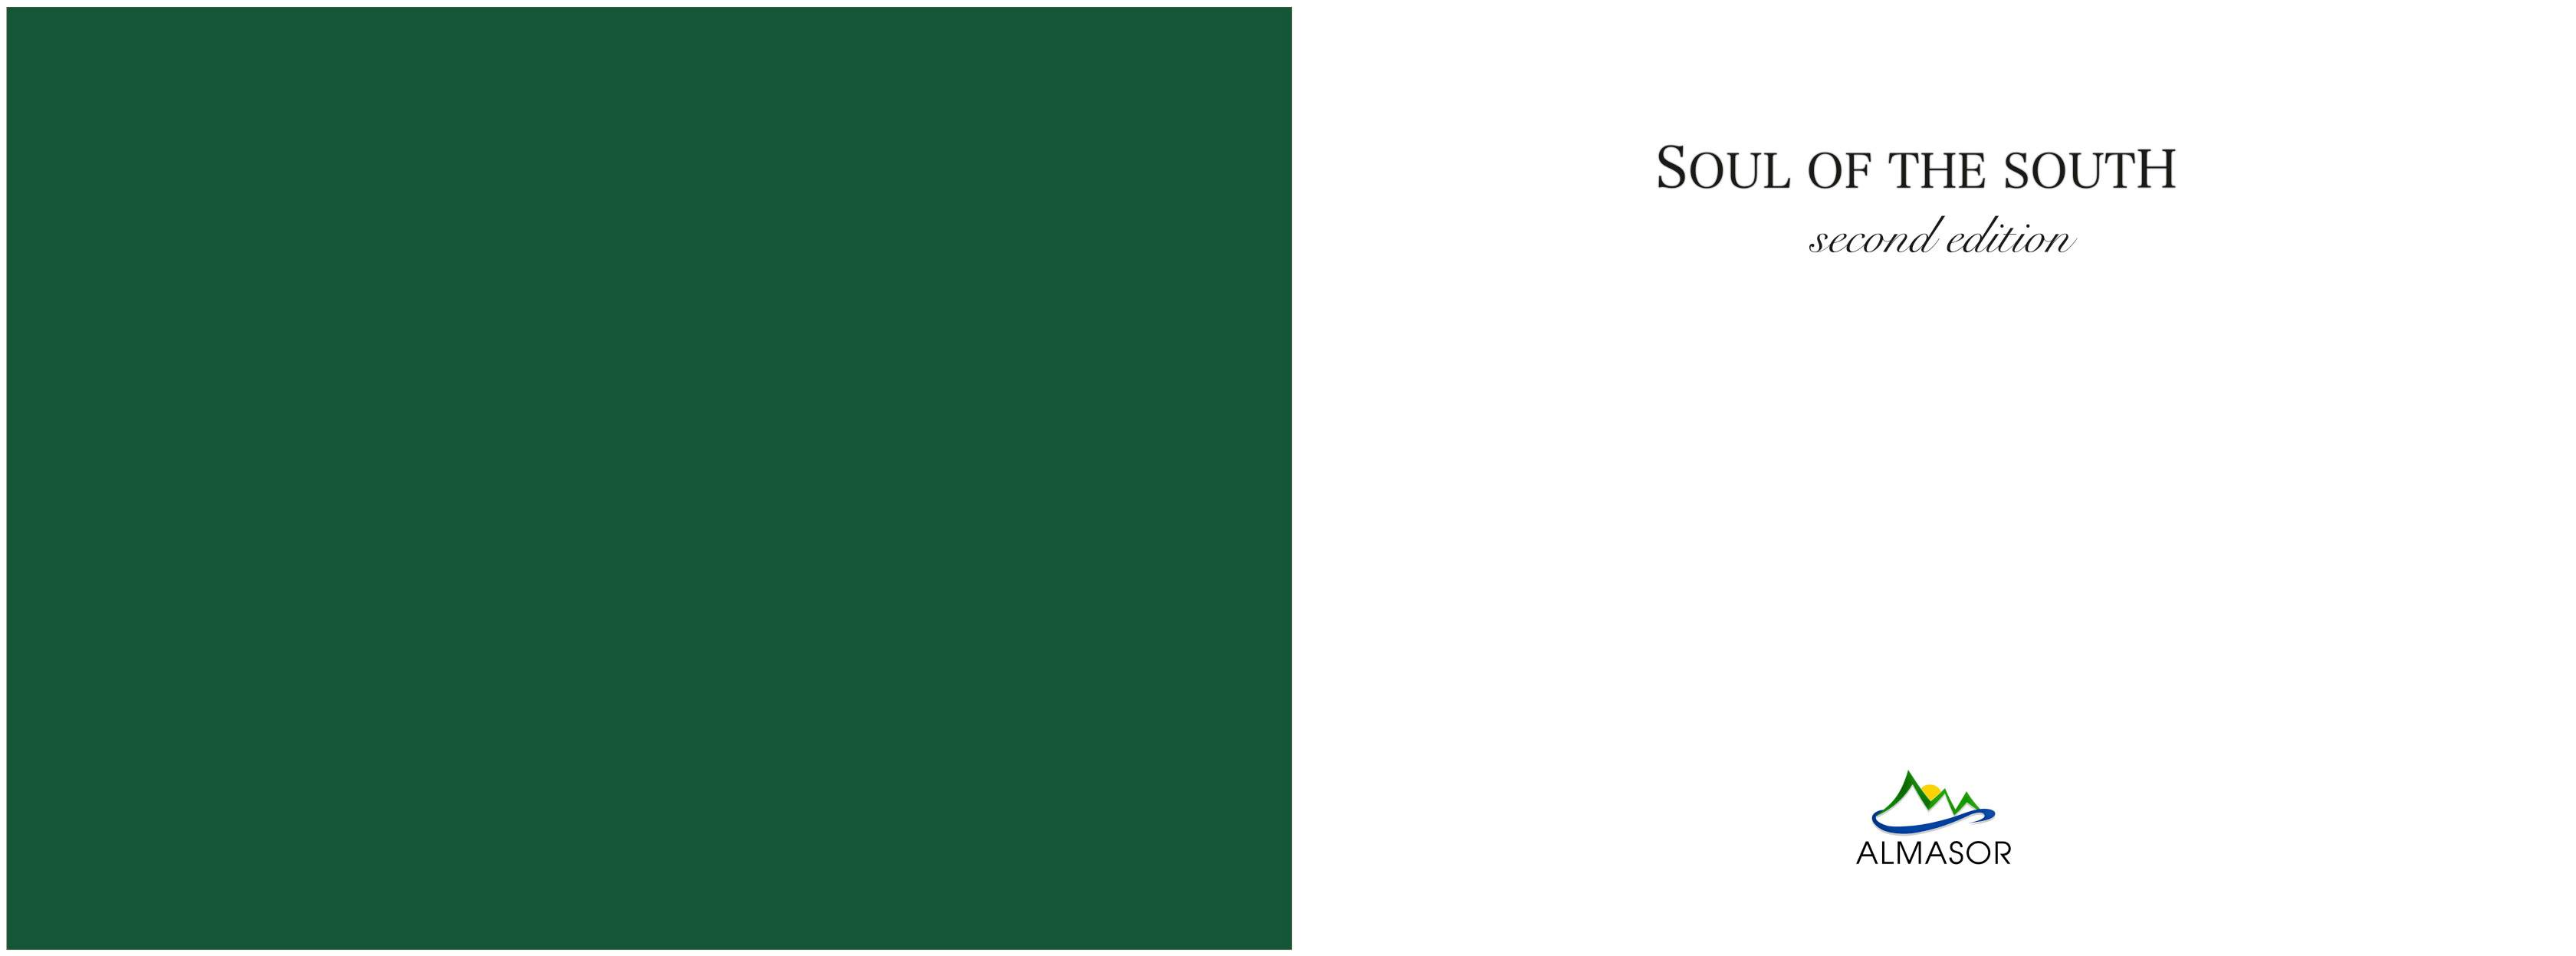 almasor soul of the south 2nd edition